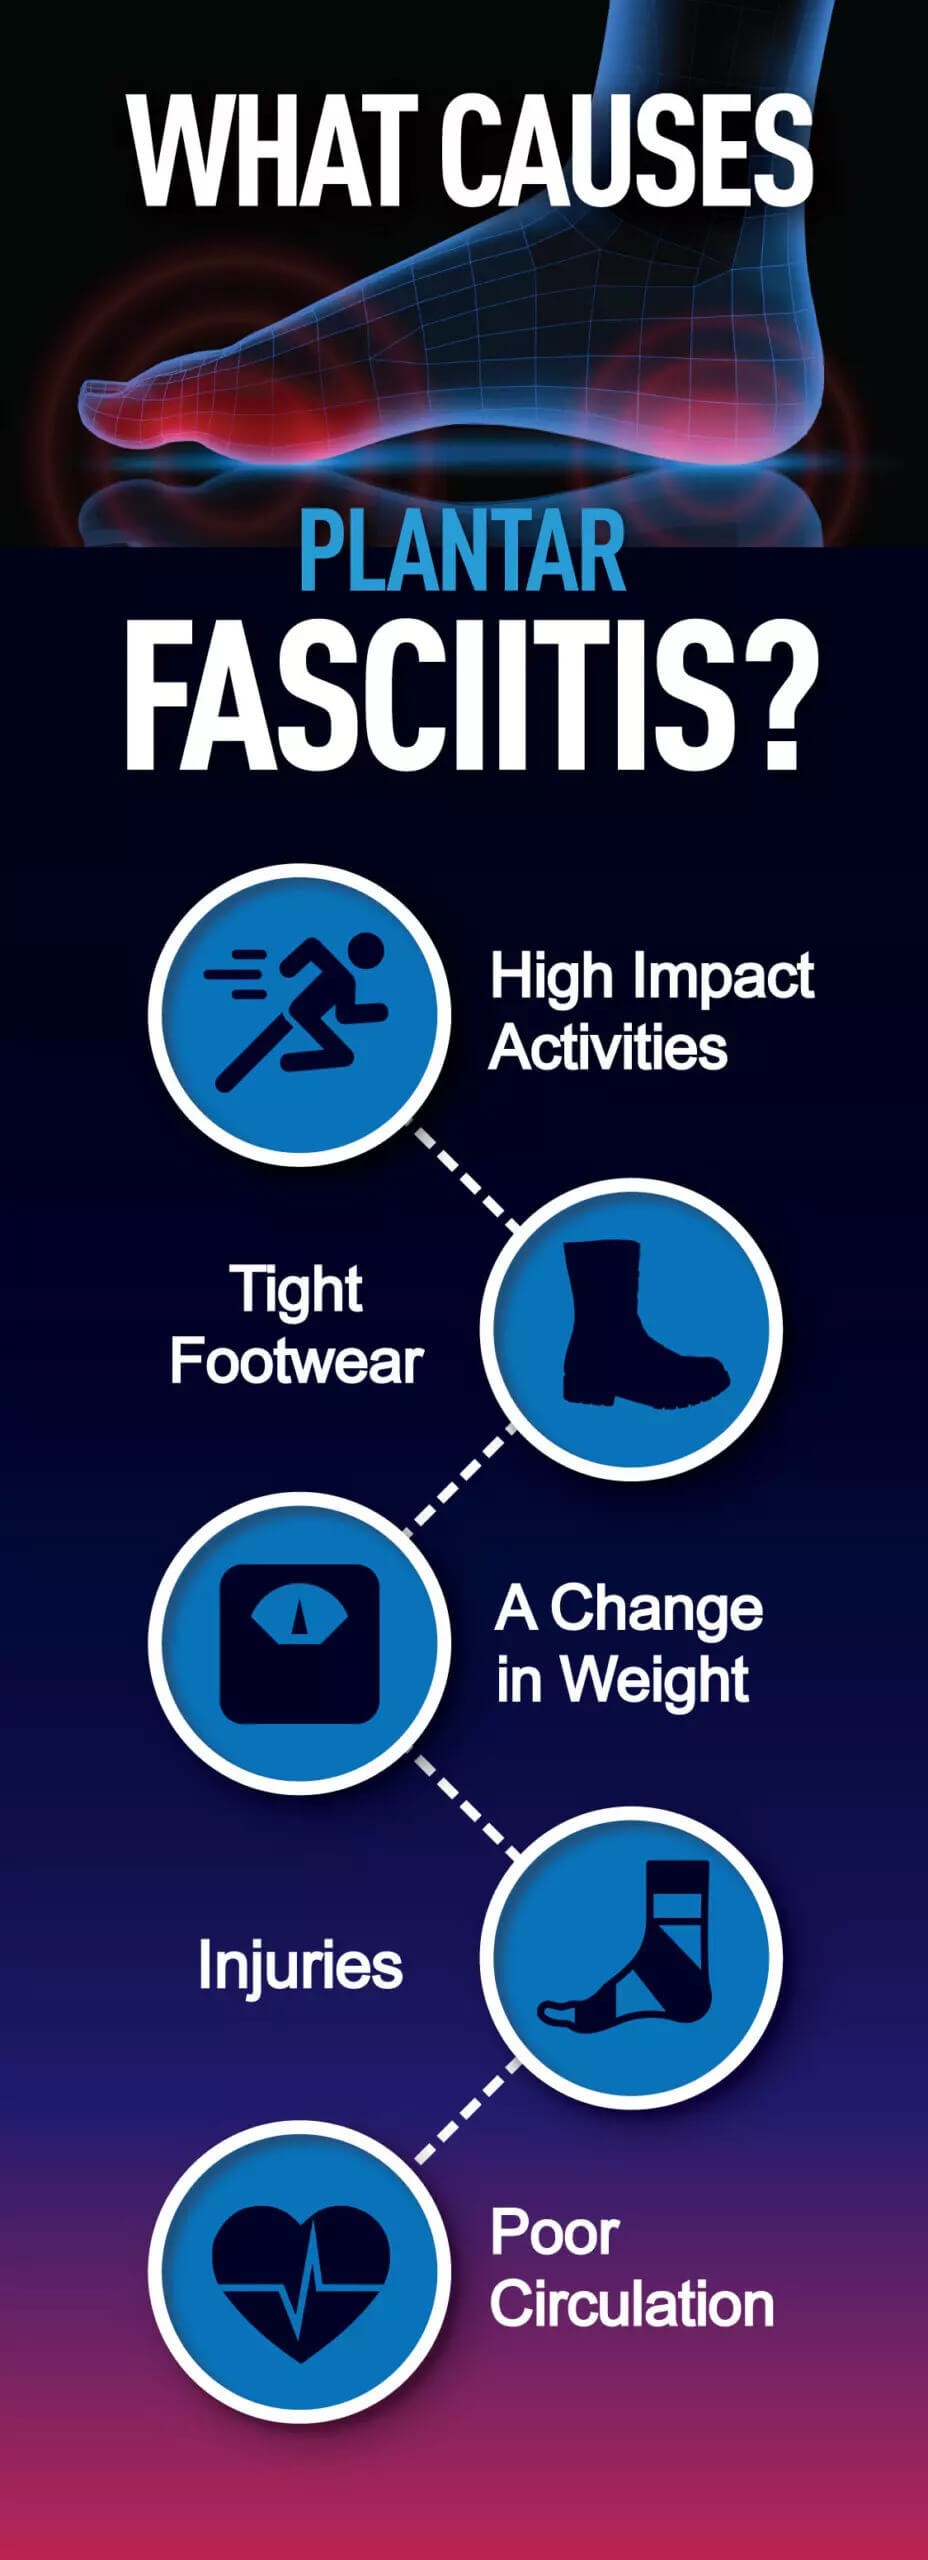 Infographic explaining activities that typically cause flat feet VA disability issues, such as plantar fasciitis. Created by © VA Claims Insider, LLC.